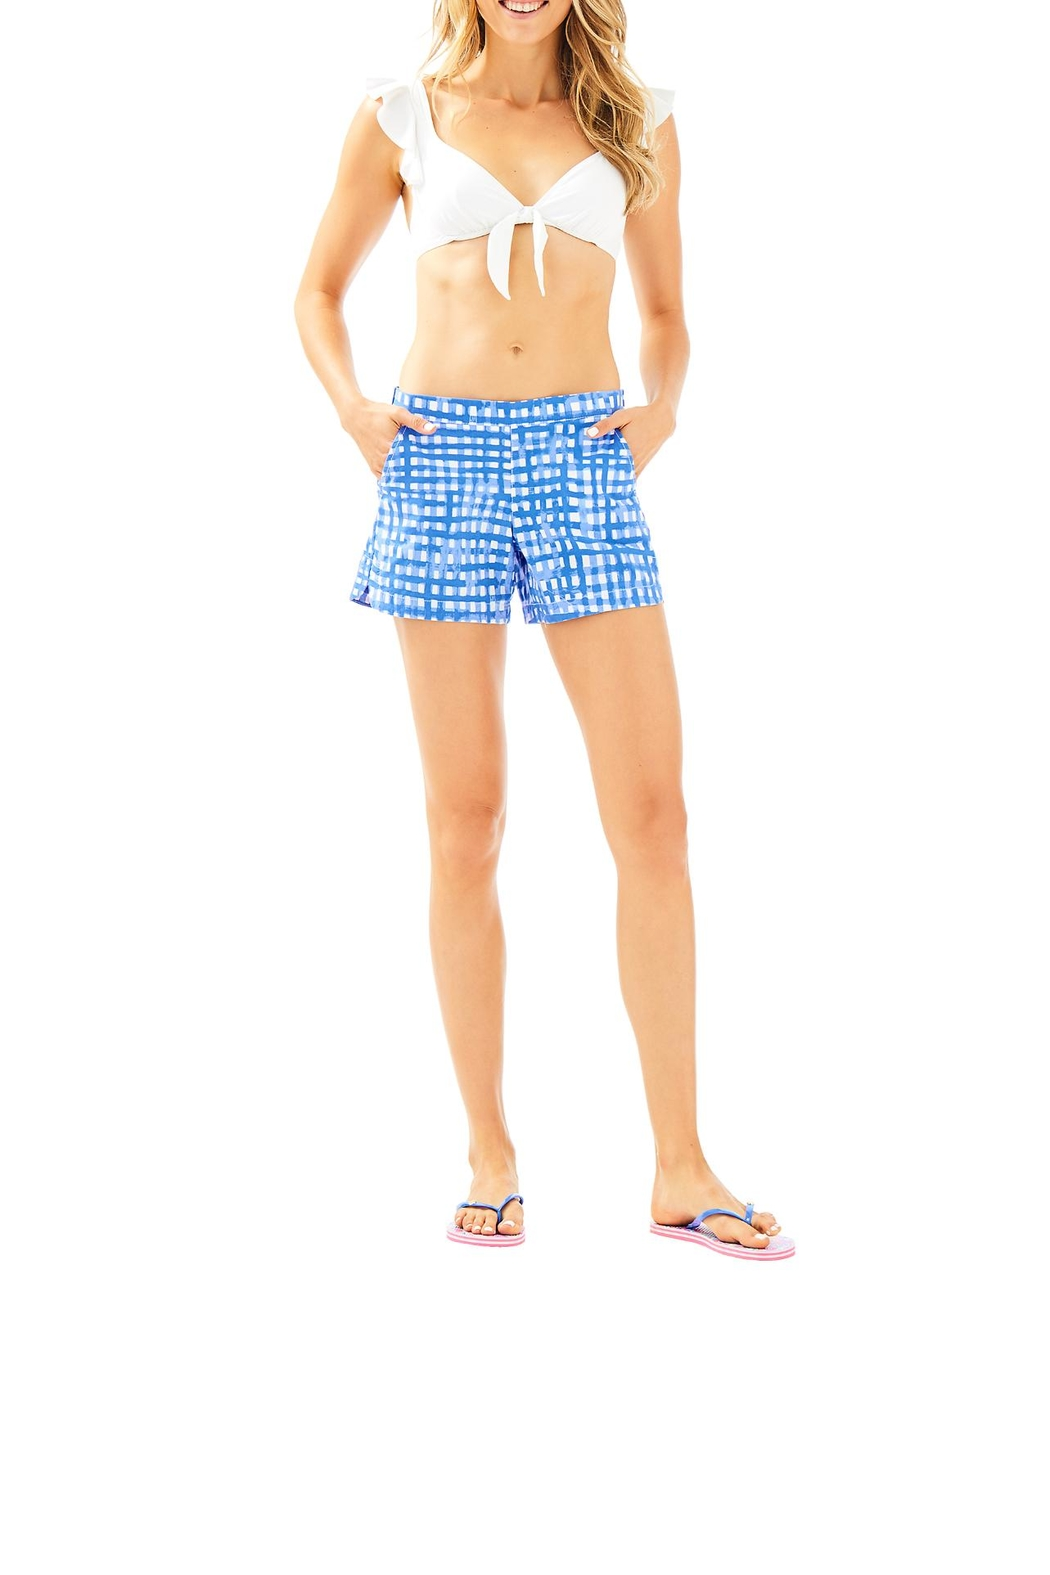 Lilly Pulitzer Ocean View Boardshort - Back Cropped Image